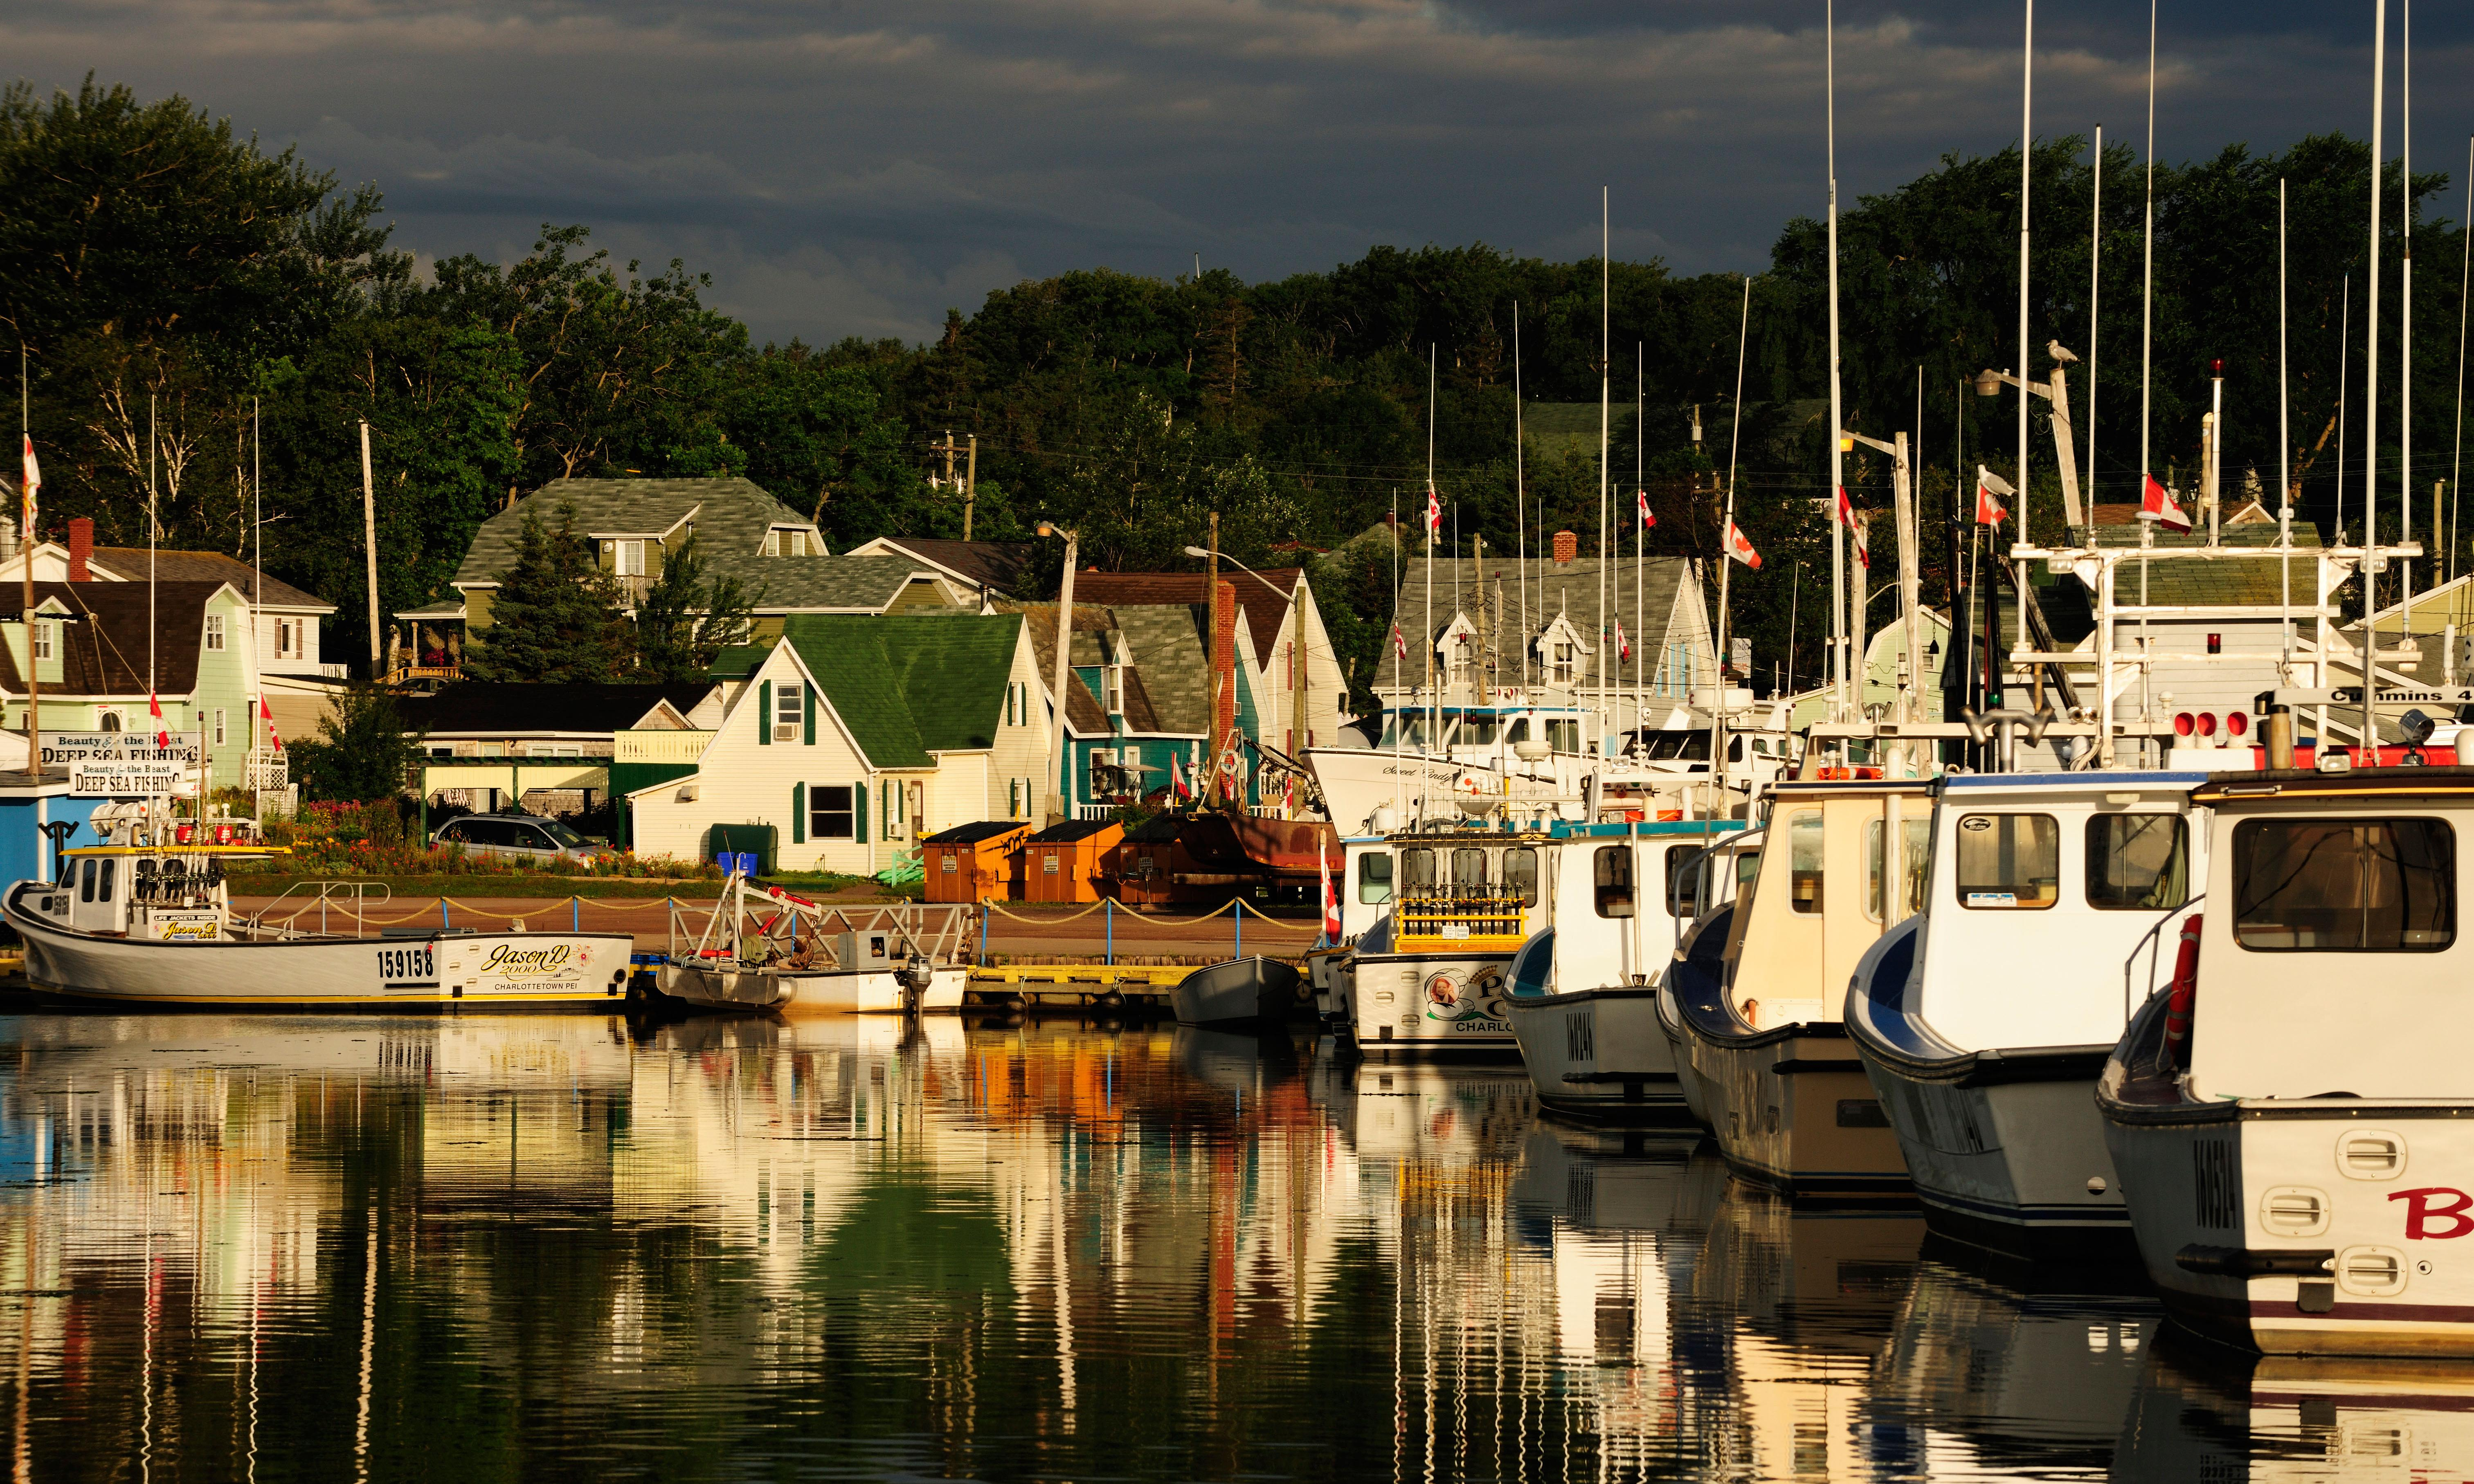 Prince Edward Island elevates Green party to opposition in Canadian first